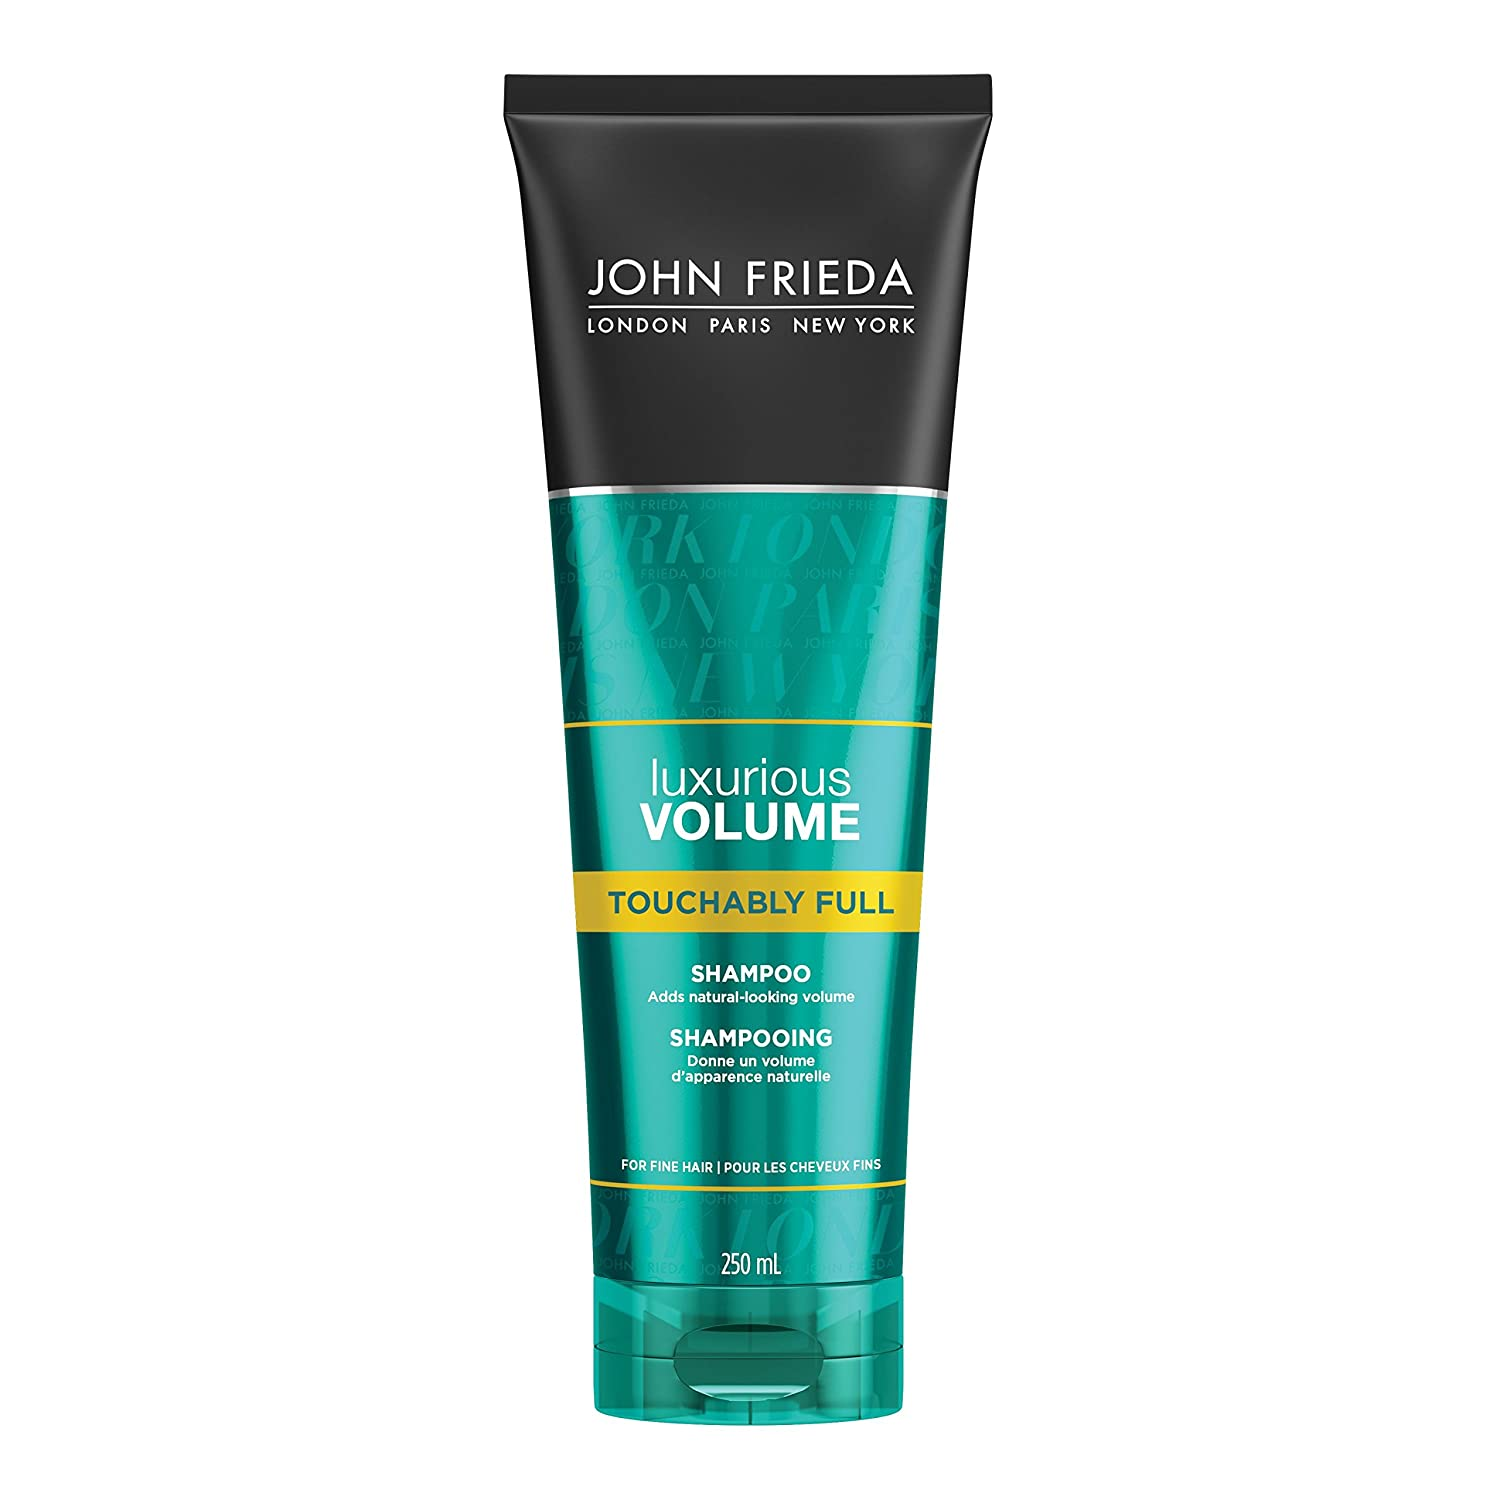 JOHN FRIEDA Luxurious Volume Touchably Full Shampoo, 250 ml Kao